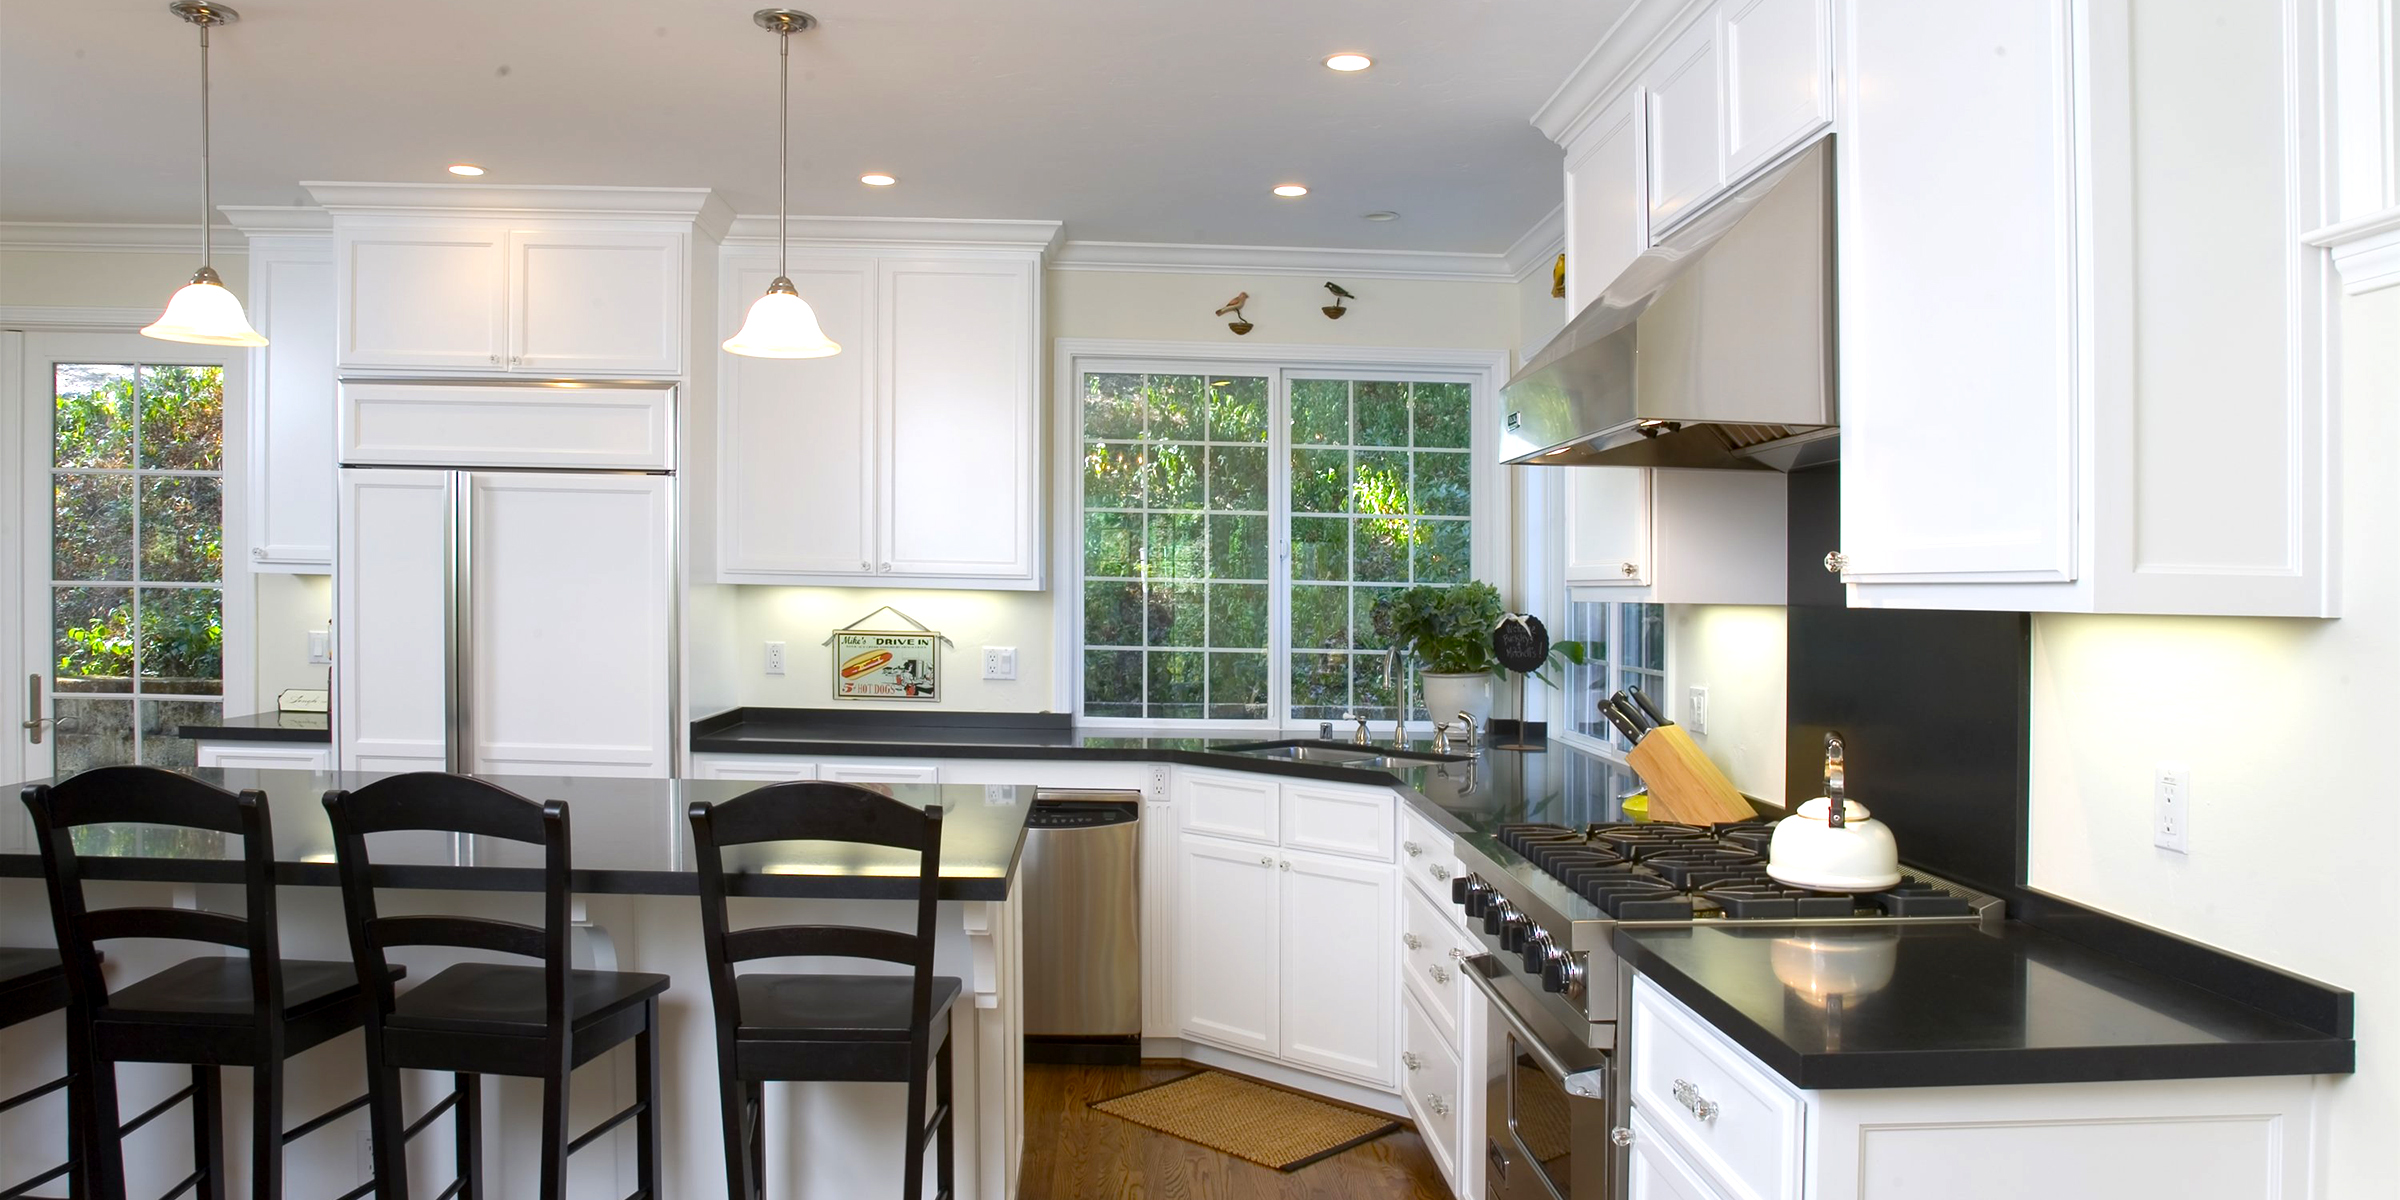 kitchen remodel cost: where to spend and how to save